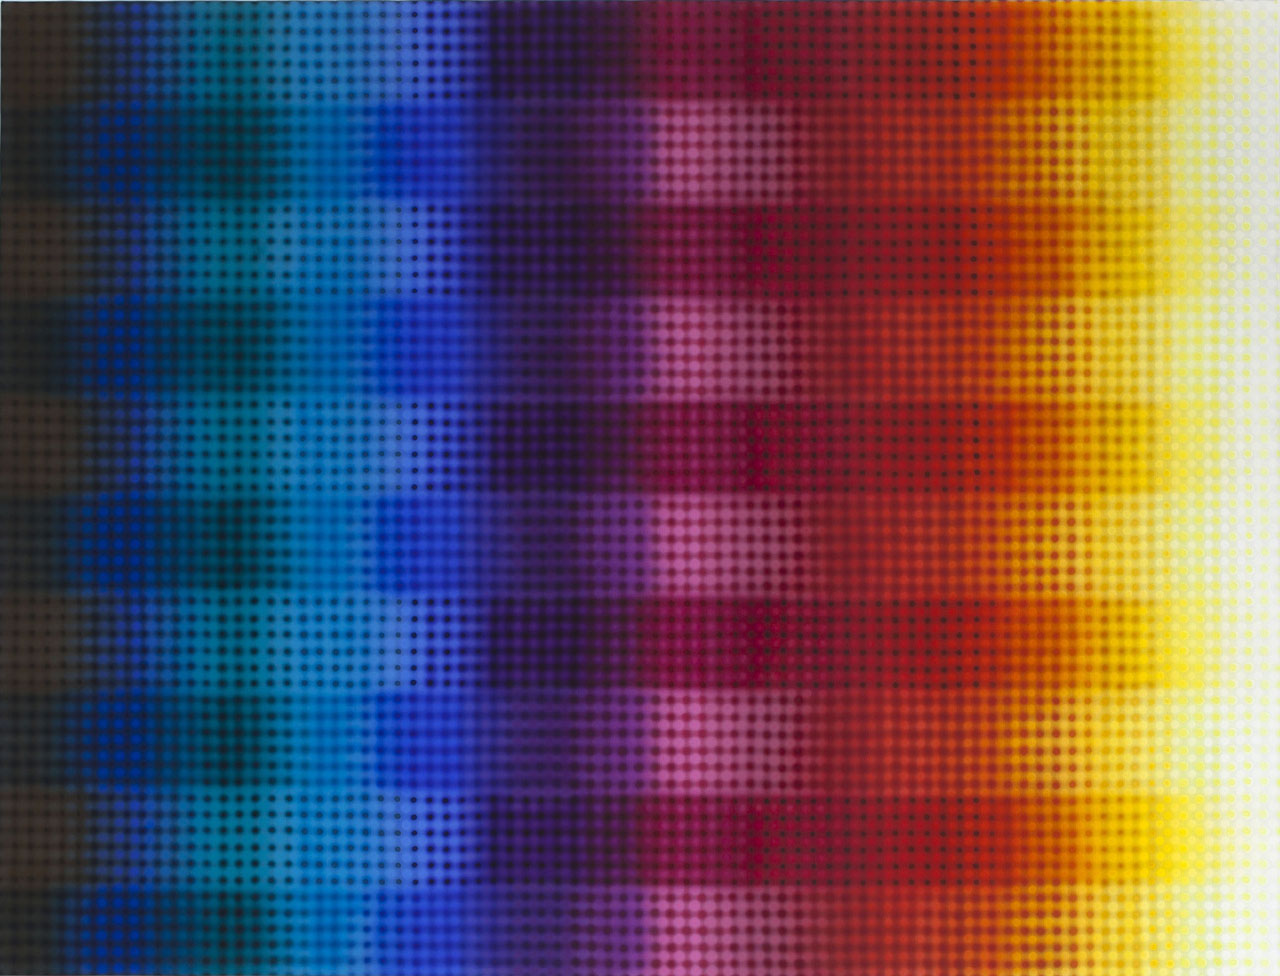 Li Shurui  ,   Inner Rainbow  , 2011, acrylic on canvas, 70 7/8 x 94 1/2 in. (180 x 240 cm)李姝睿, 室内彩虹, 2011, 布面丙烯, 70 7/8 x 94 1/2 寸 (180 x 240 厘米)